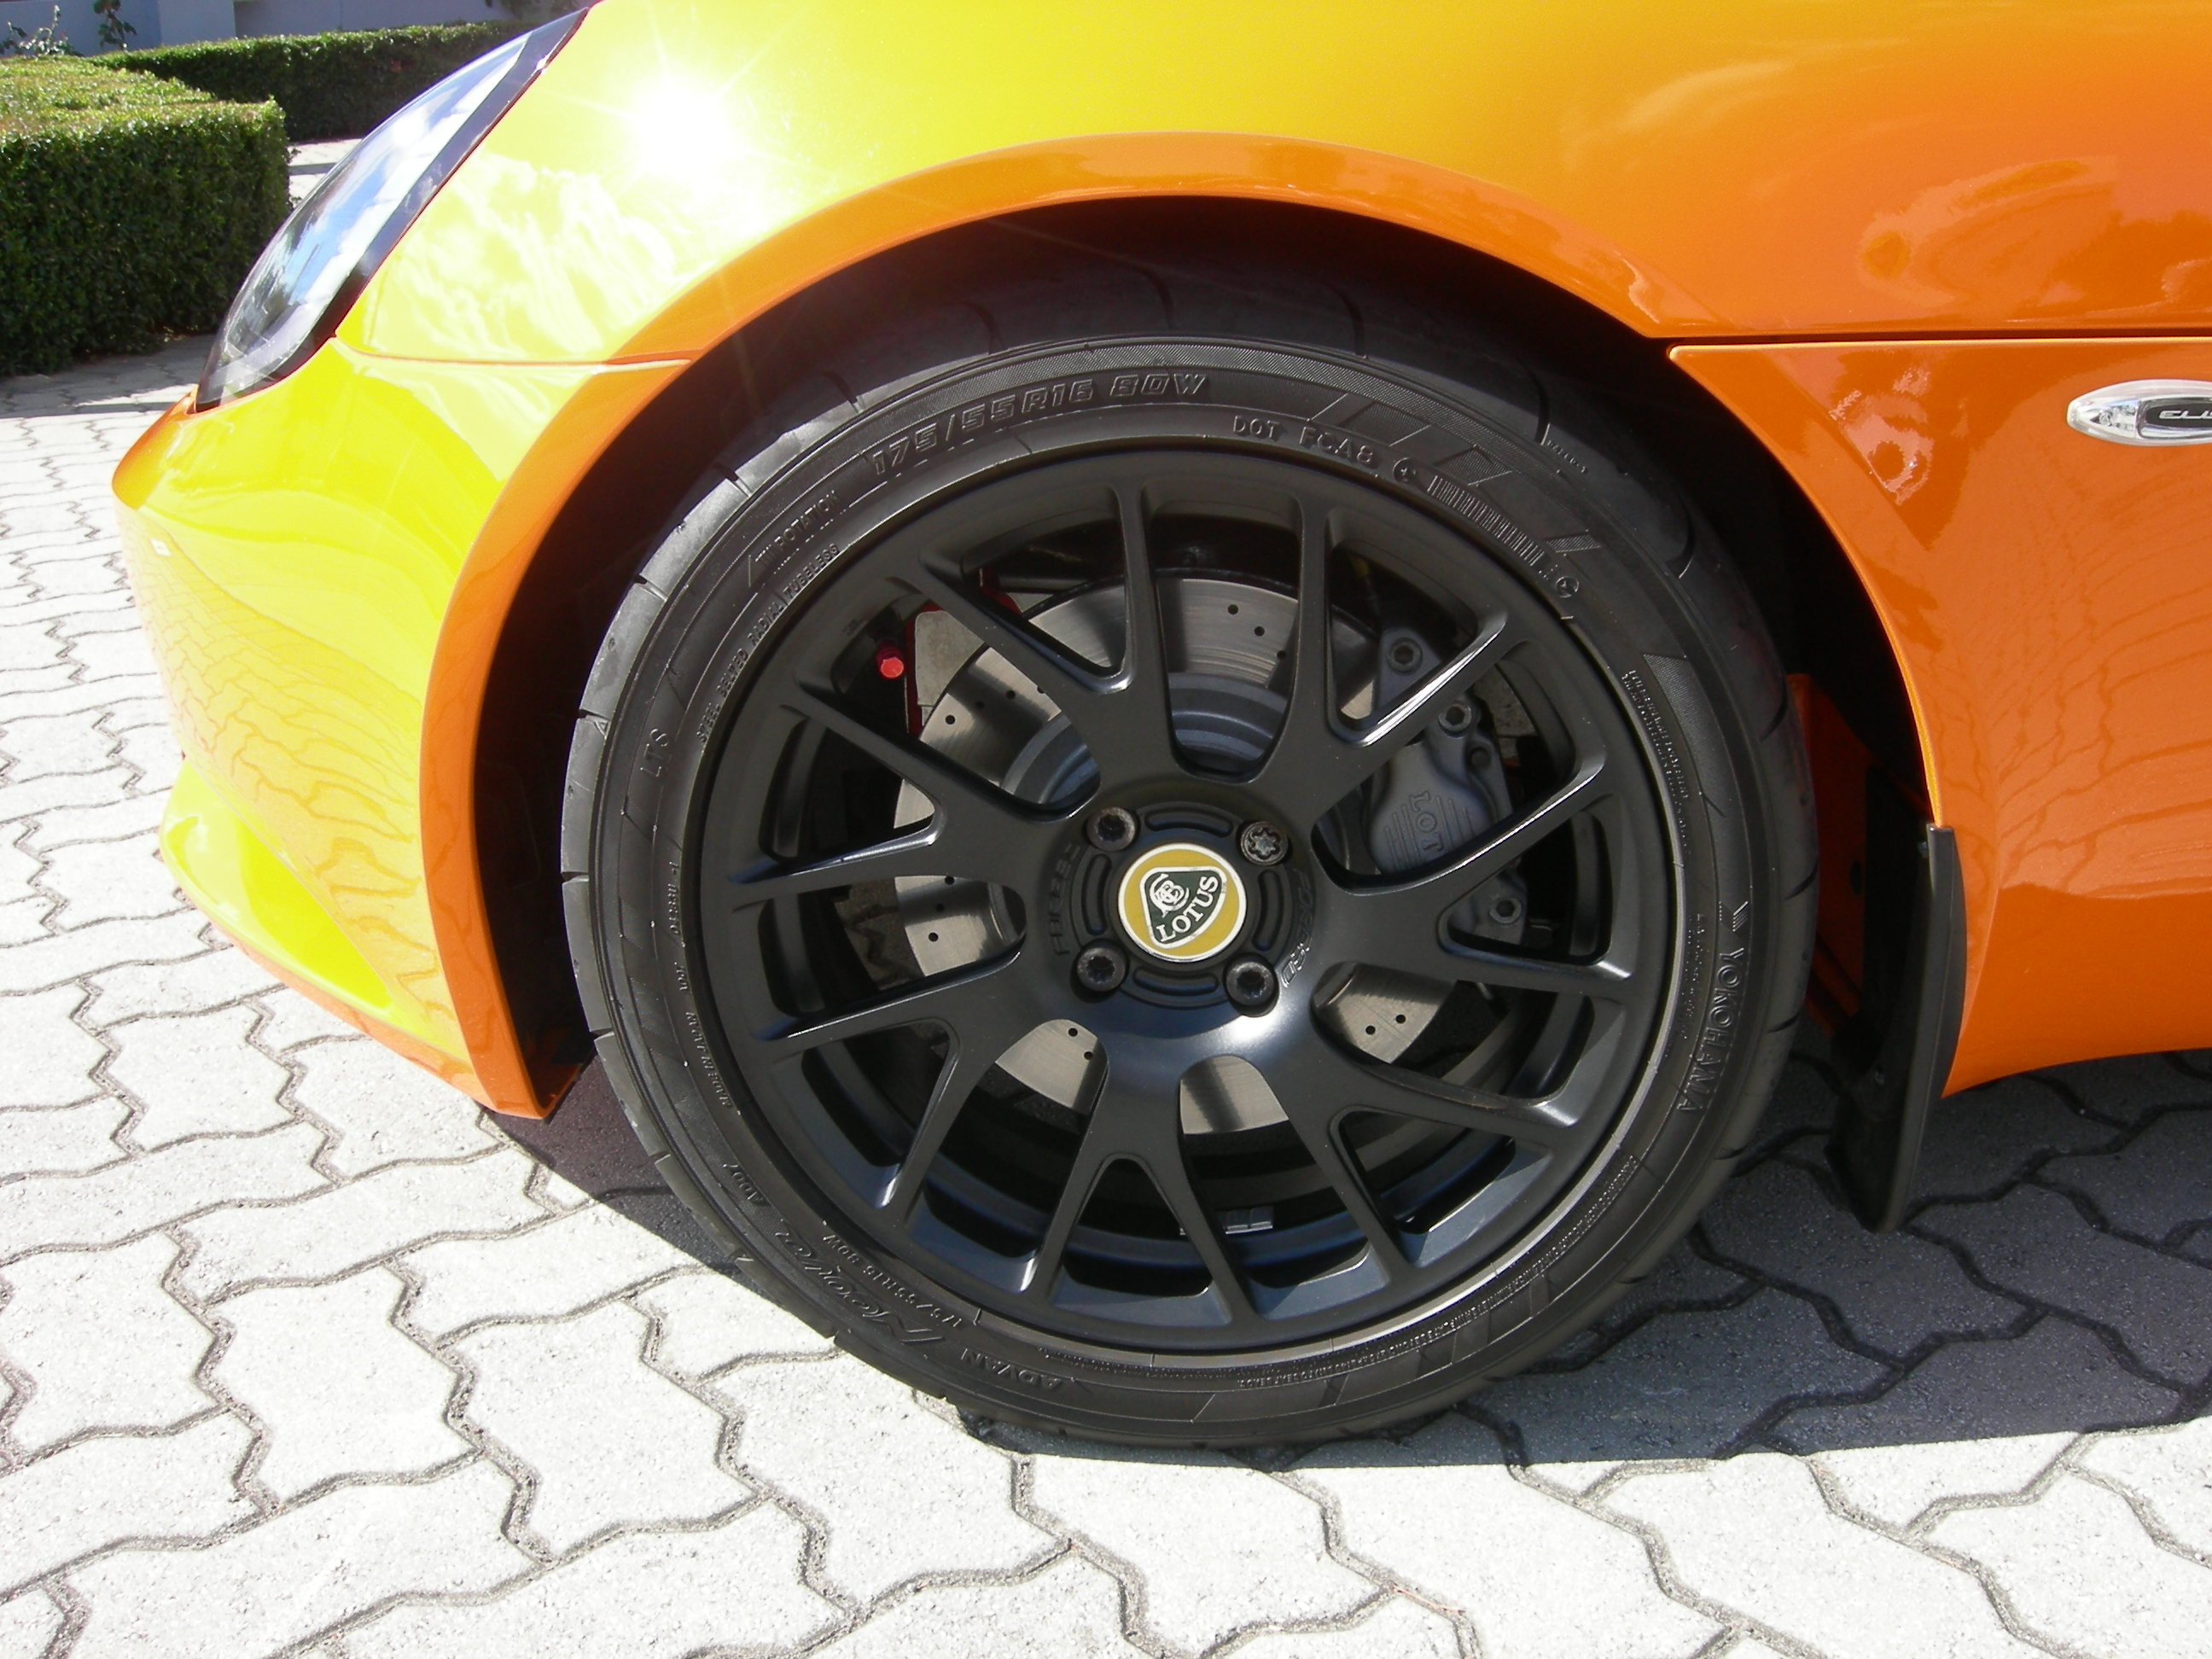 Lotus Elise S for sale in Perth